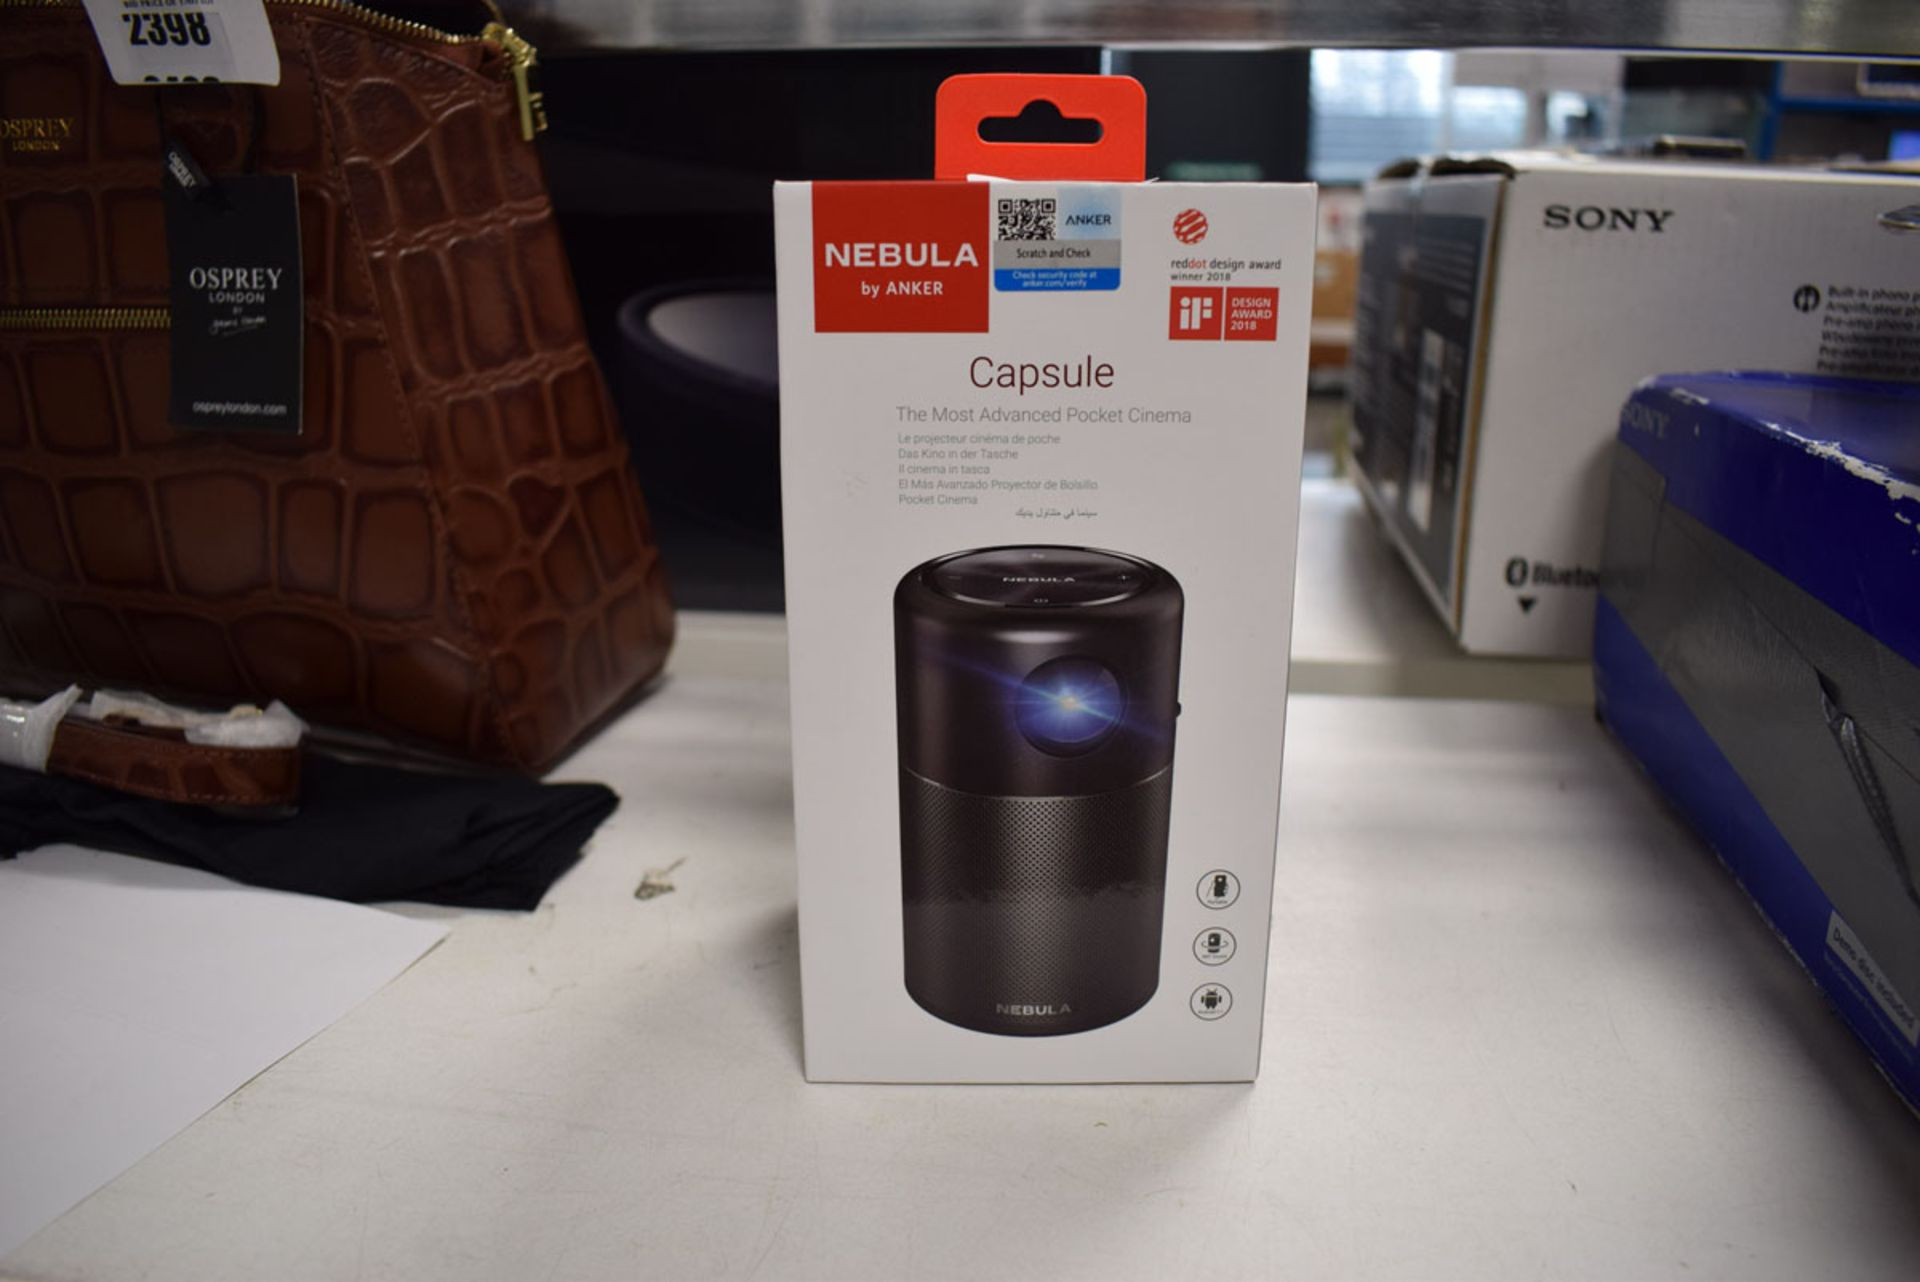 Anker Nebula Capsule Android 7.1 pocket cinema projector and speaker with box